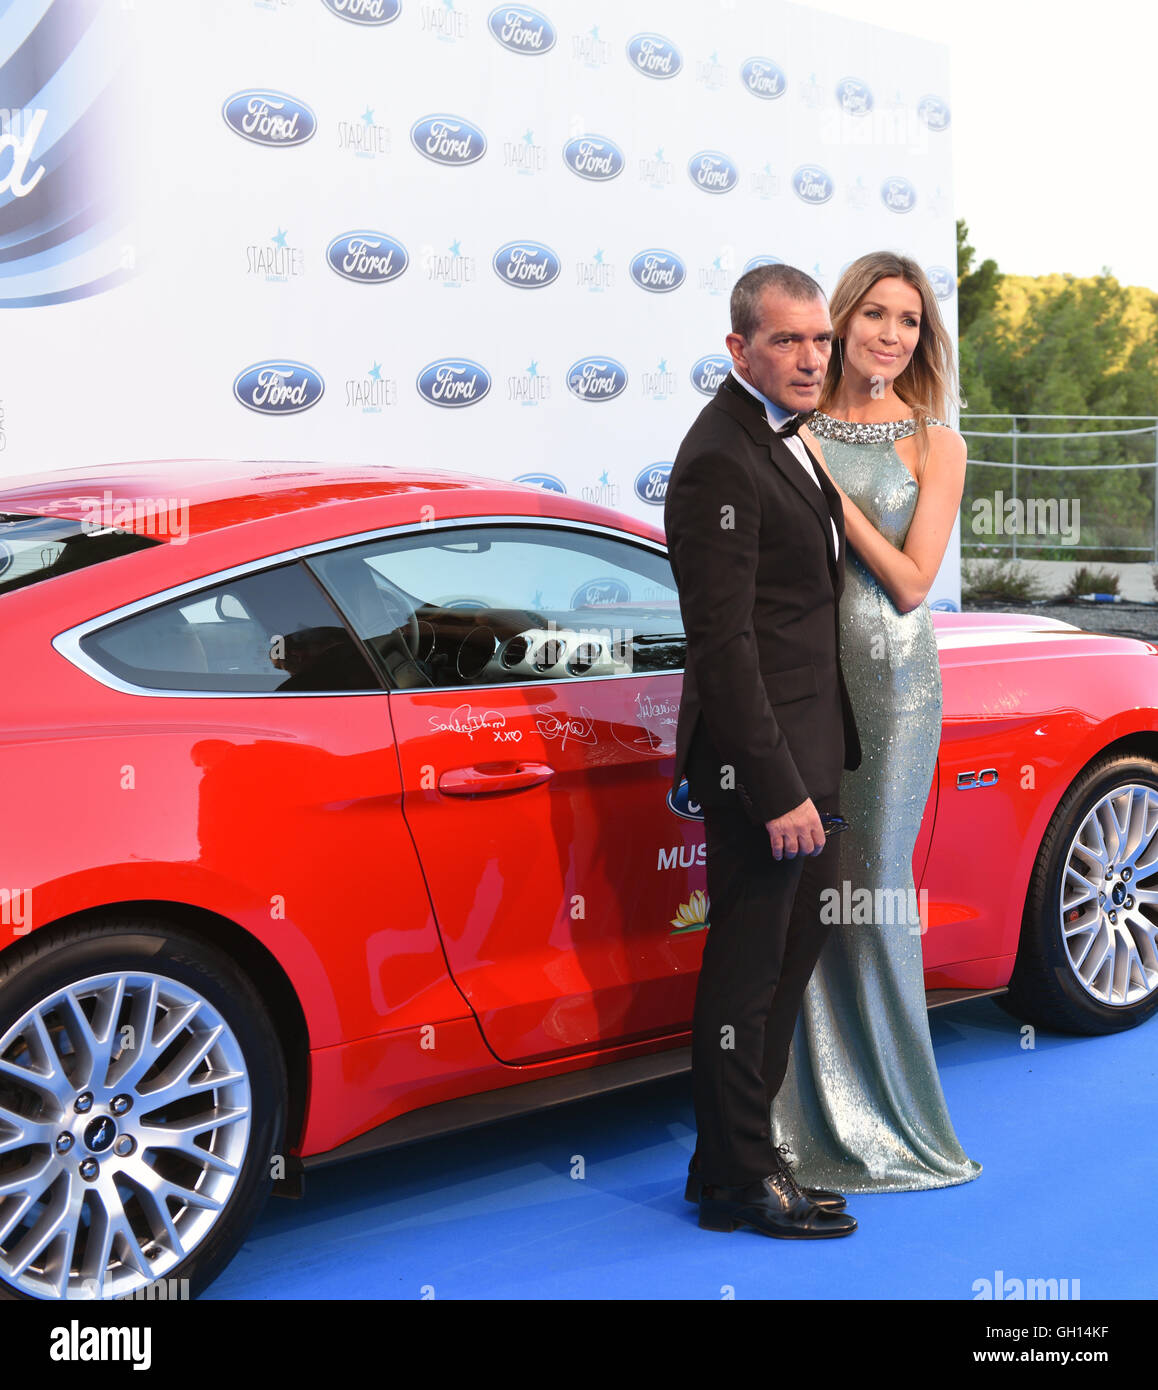 Marbella, Spain. 06th Aug, 2016. Actor Antonio Banderas and his partner in front of a red Ford Mustang Car which - Stock Image